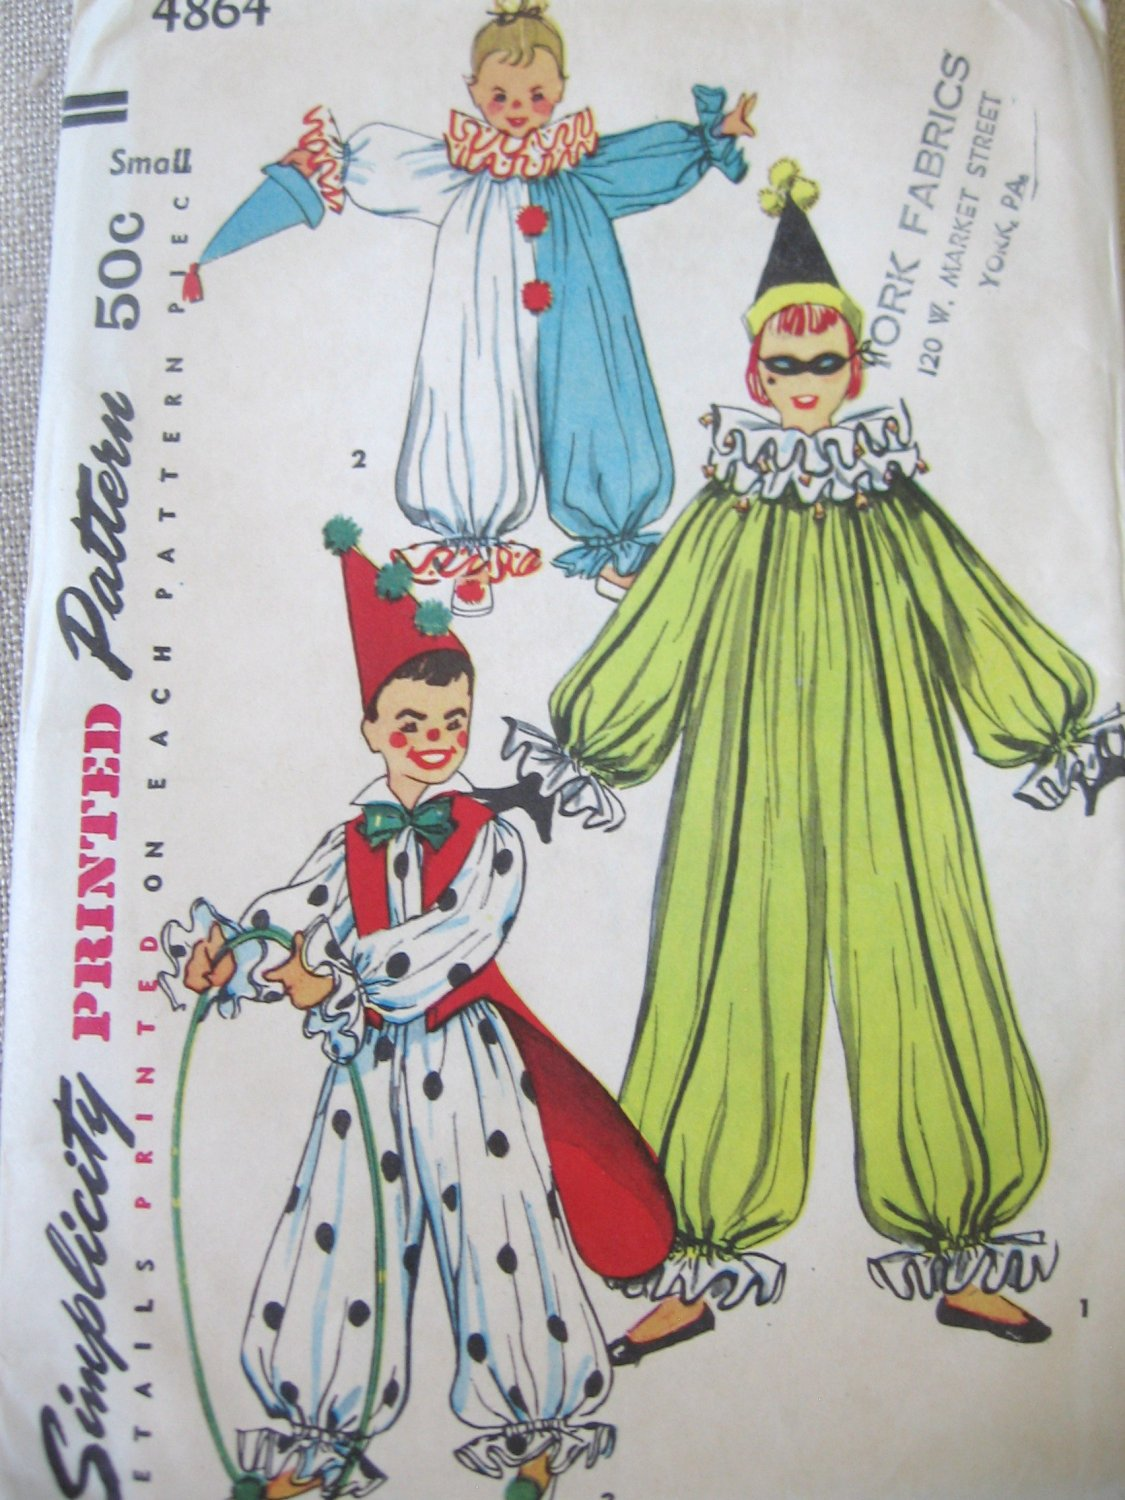 Simplicity 4864 vintage Clown Costume Sewing Pattern Childs Sm. Uncut